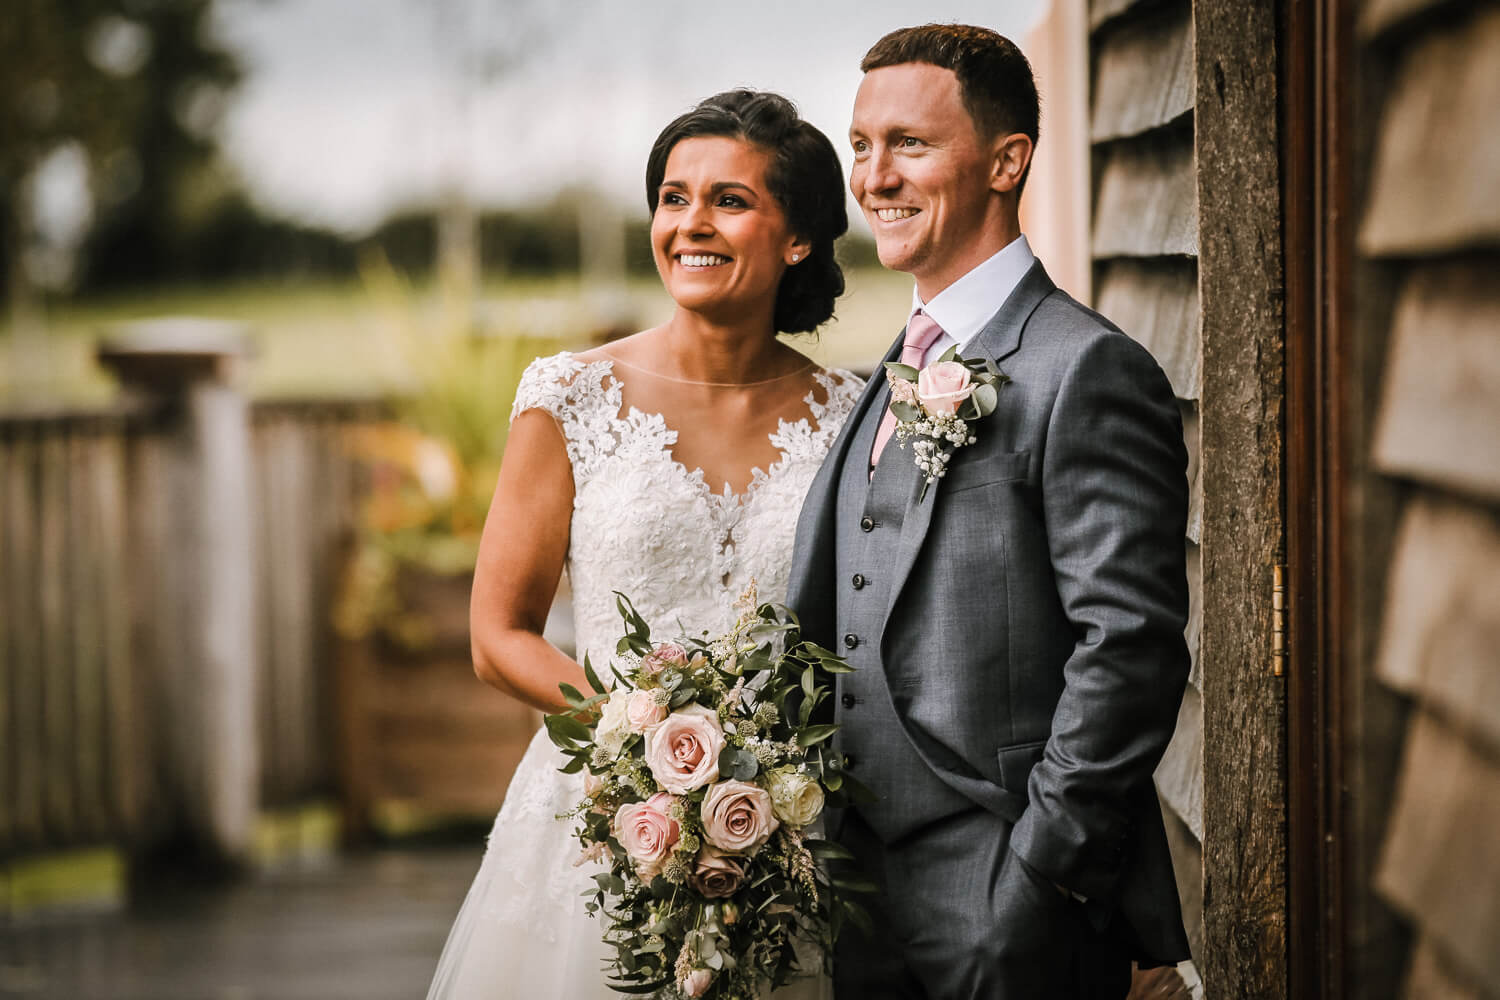 colour photo of happy smiling bride and groom